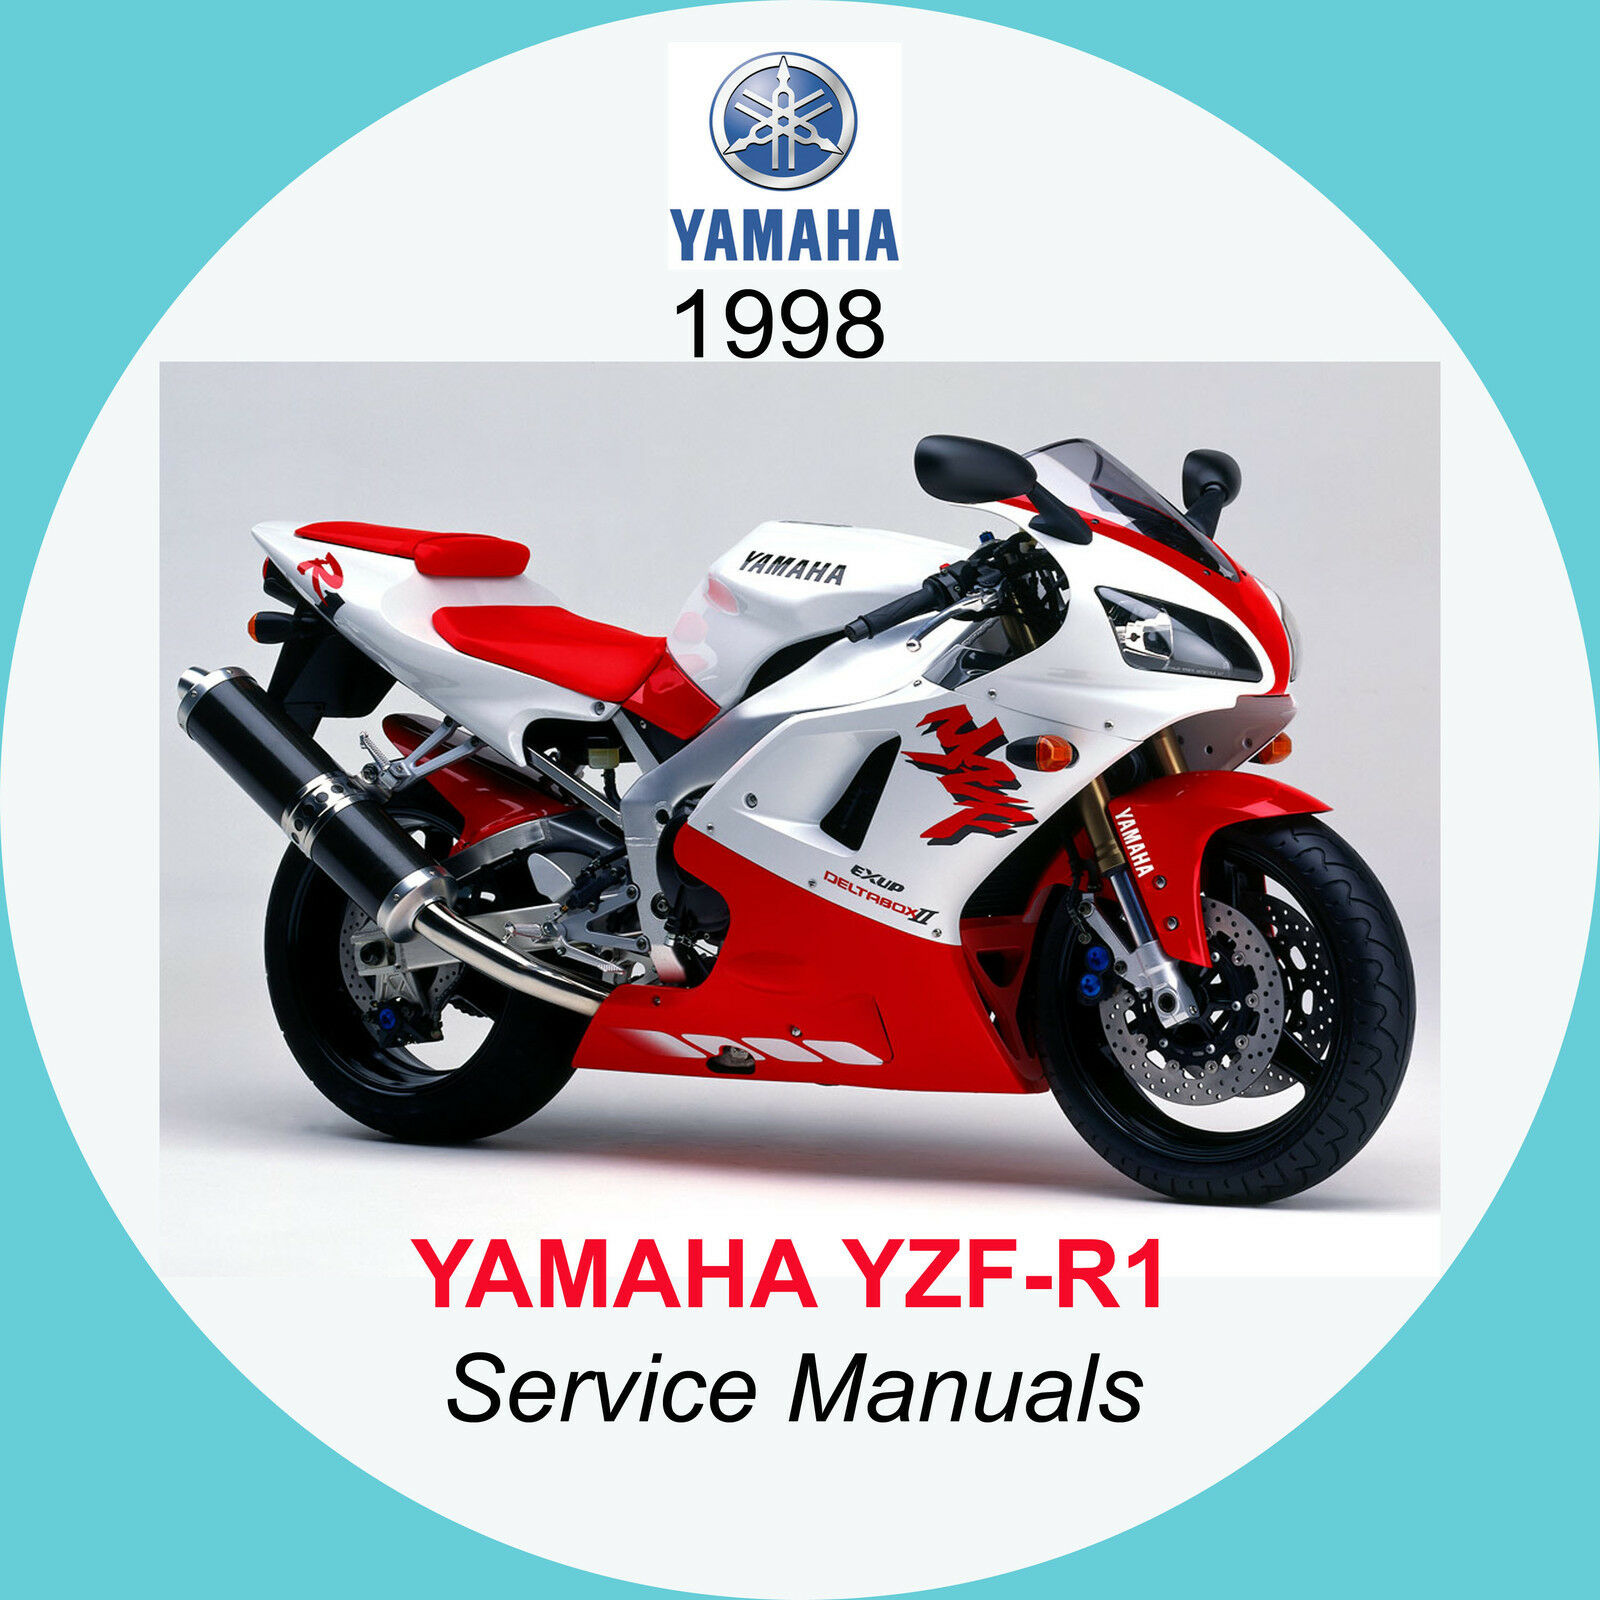 Yamaha Yzf-R1 1998-1999 Service Manual A1 1 of 1 See More